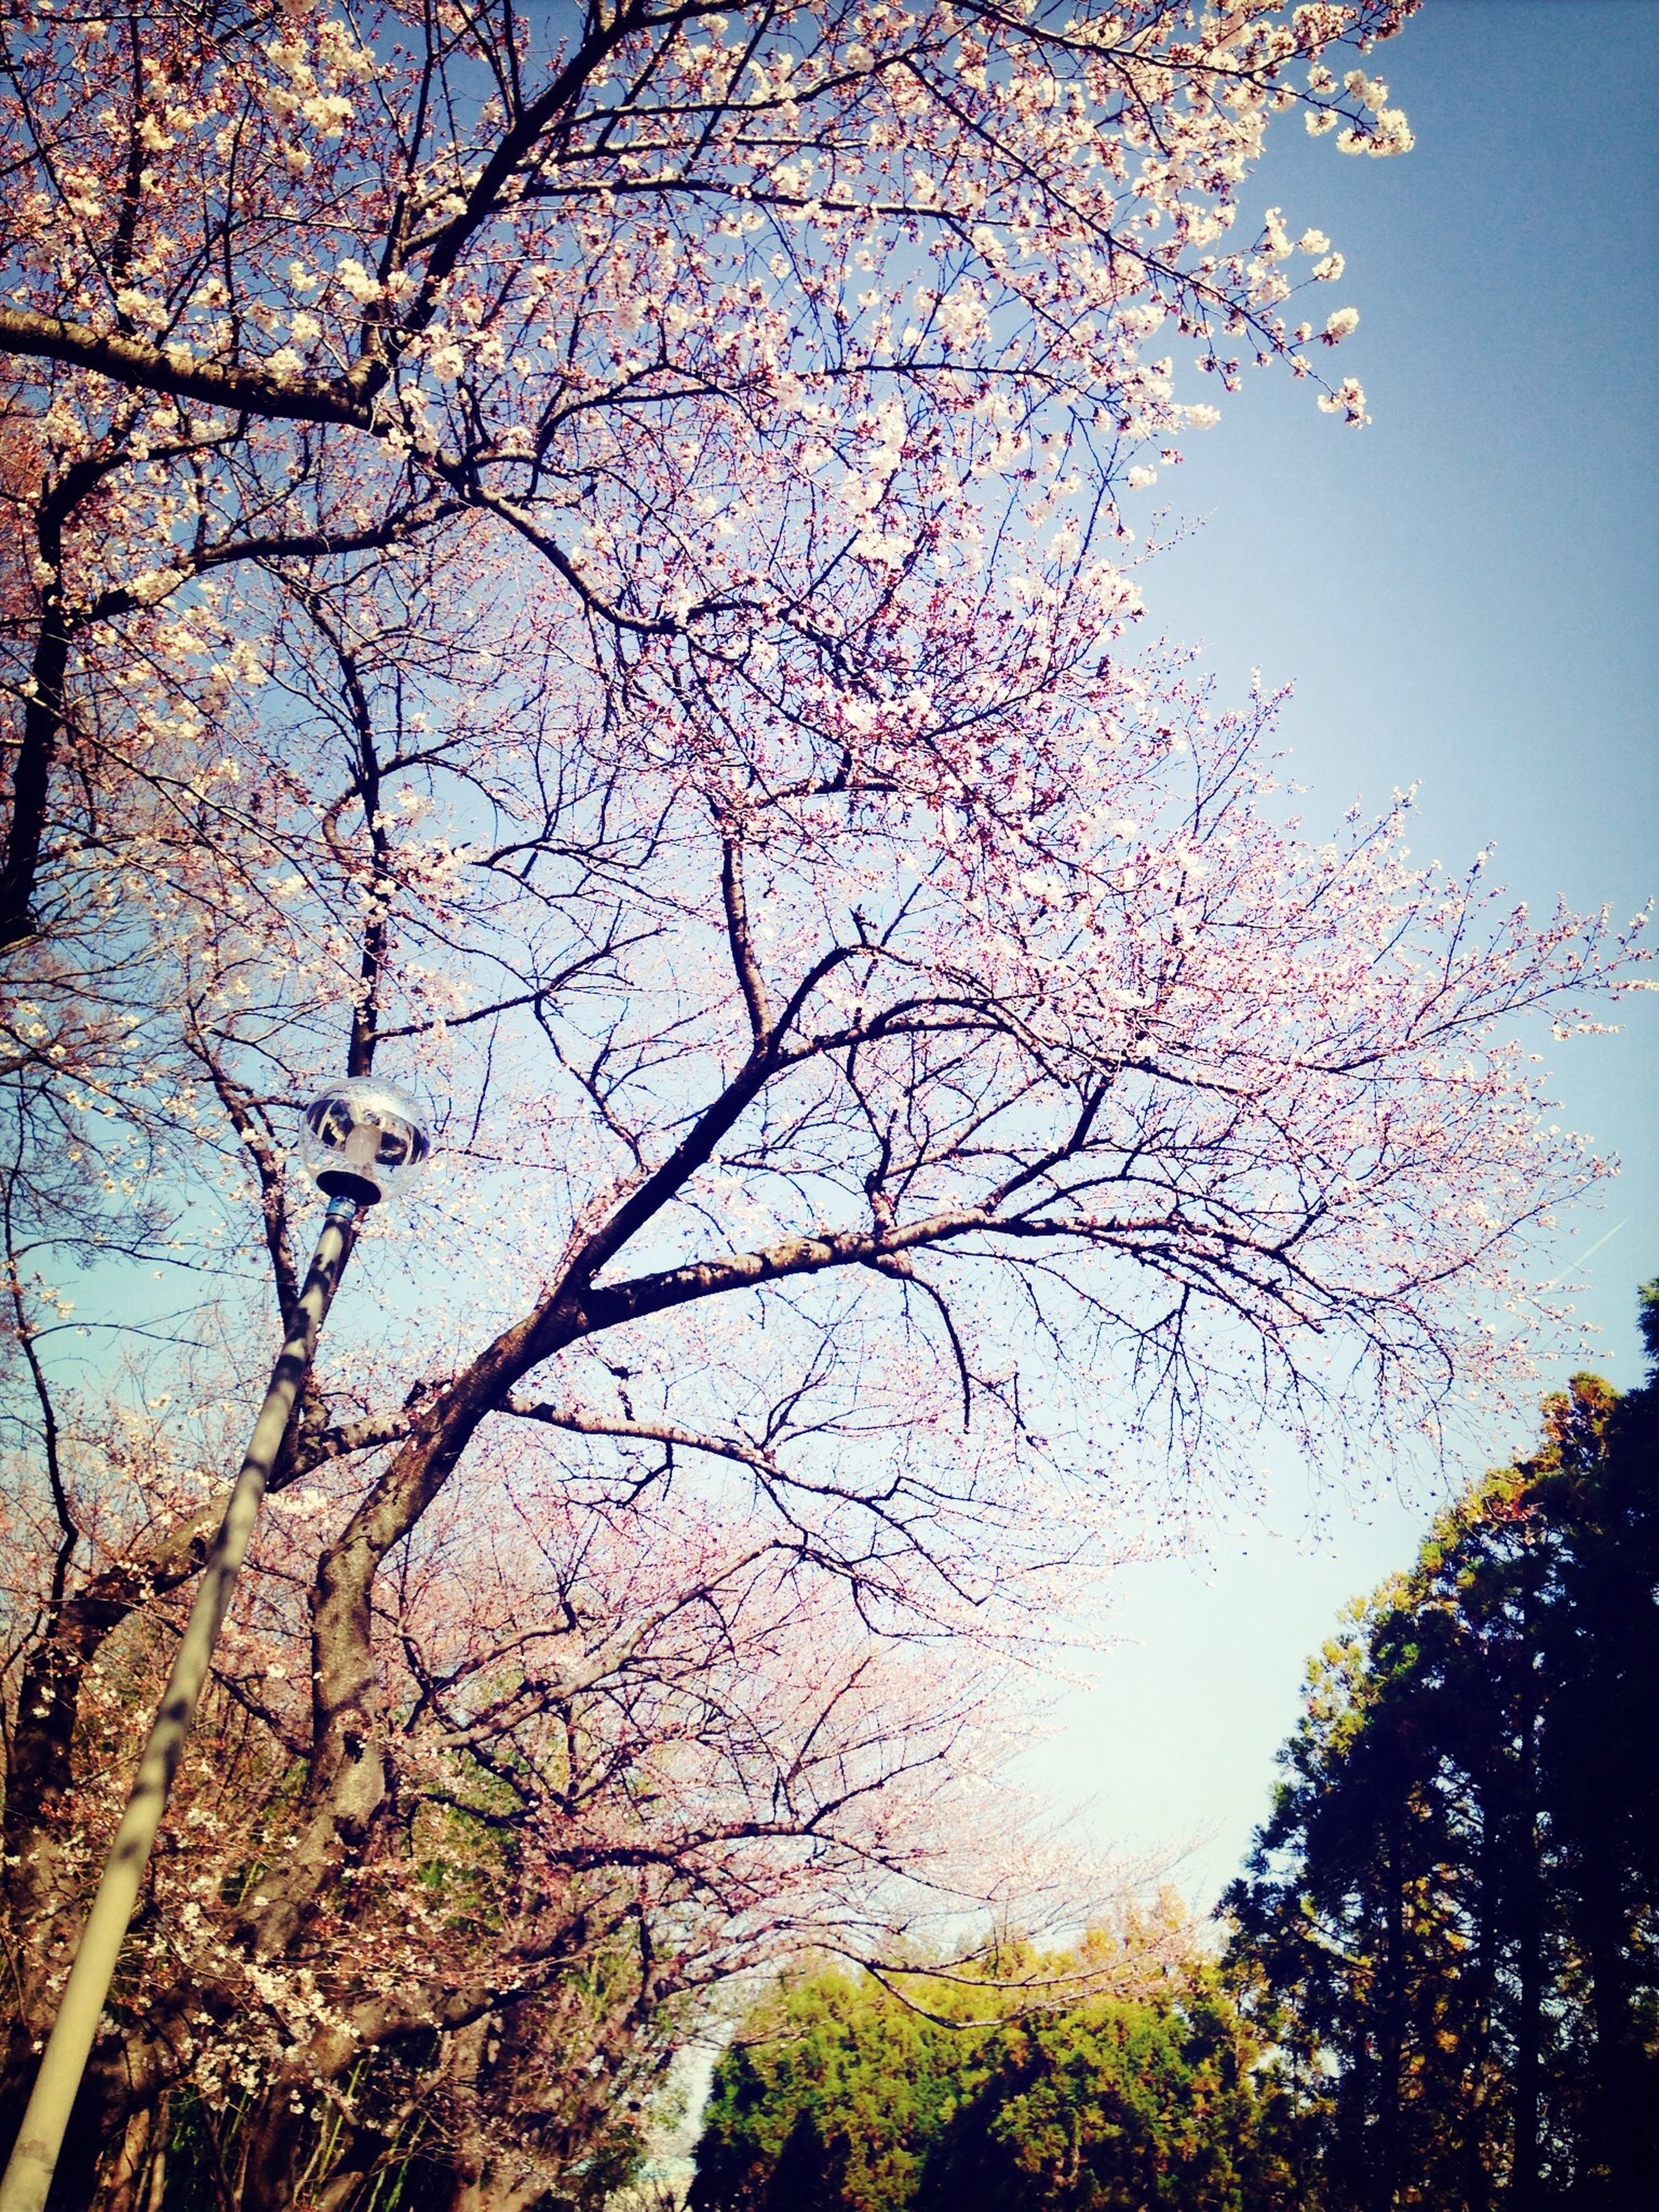 tree, branch, low angle view, growth, beauty in nature, nature, tranquility, sky, scenics, flower, clear sky, bare tree, tranquil scene, outdoors, no people, day, idyllic, freshness, sunlight, twig